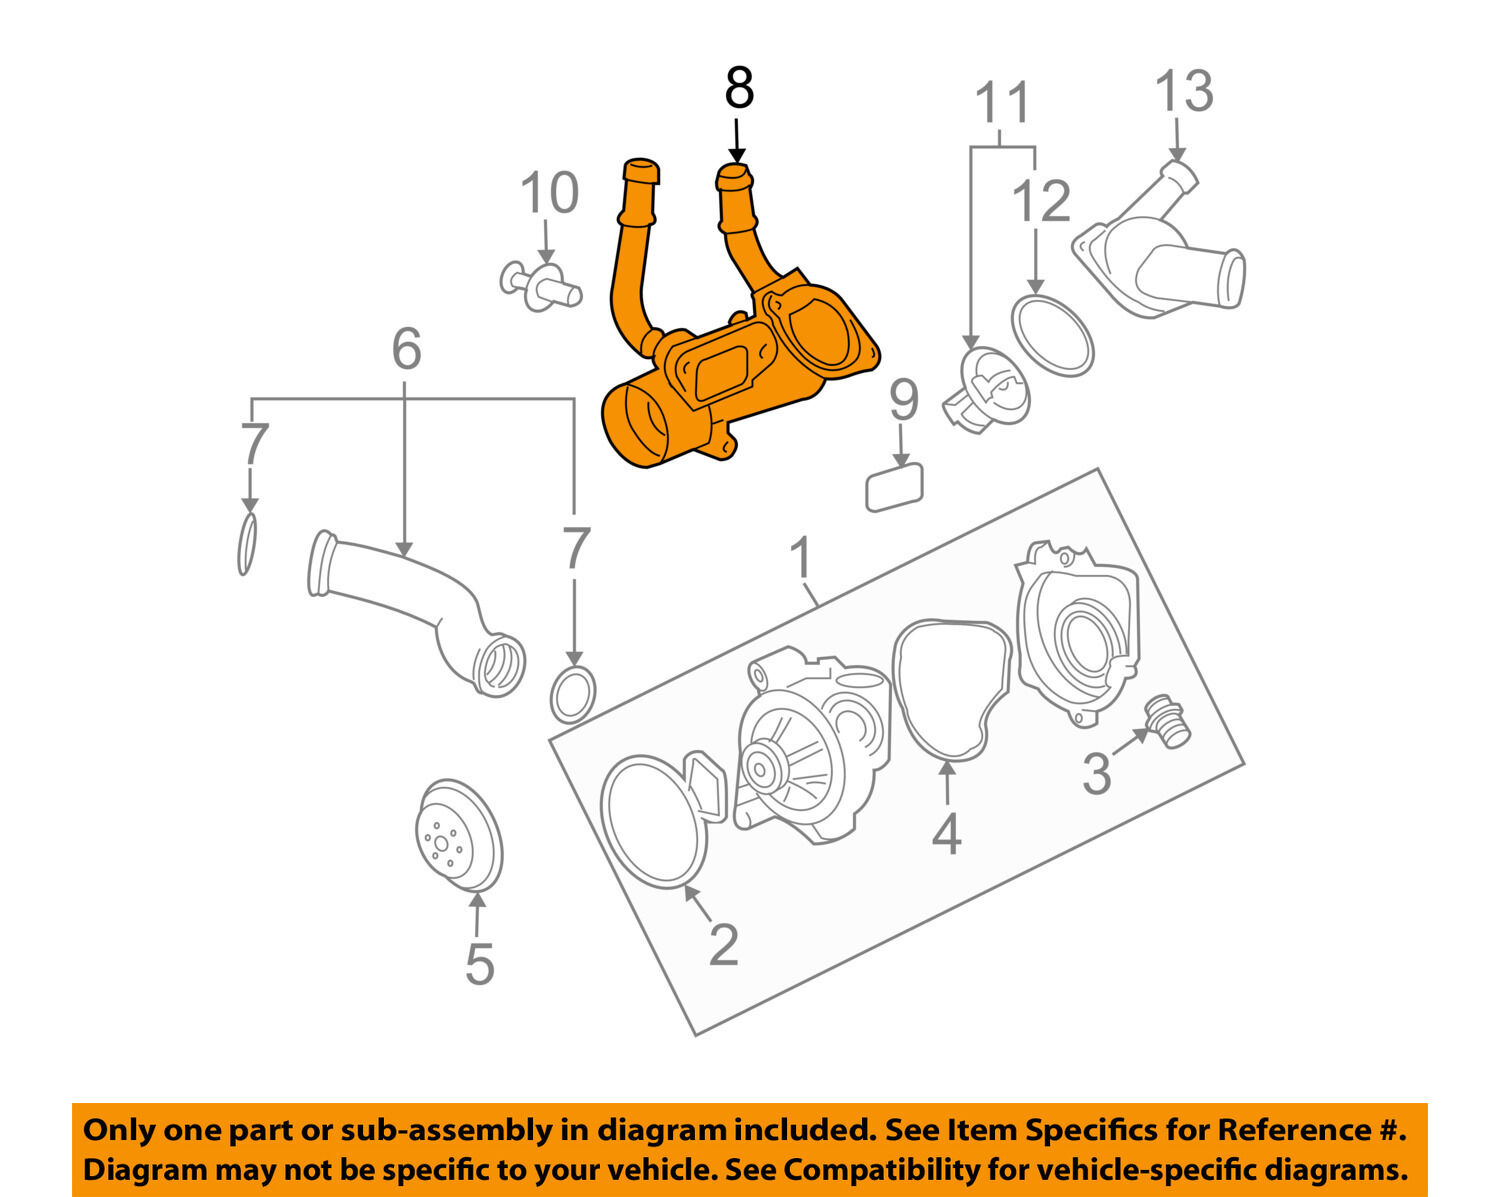 Gm Oem Engine Coolant Thermostat Housing 12597172 10494 Picclick Diagram 1 Of 2only Available